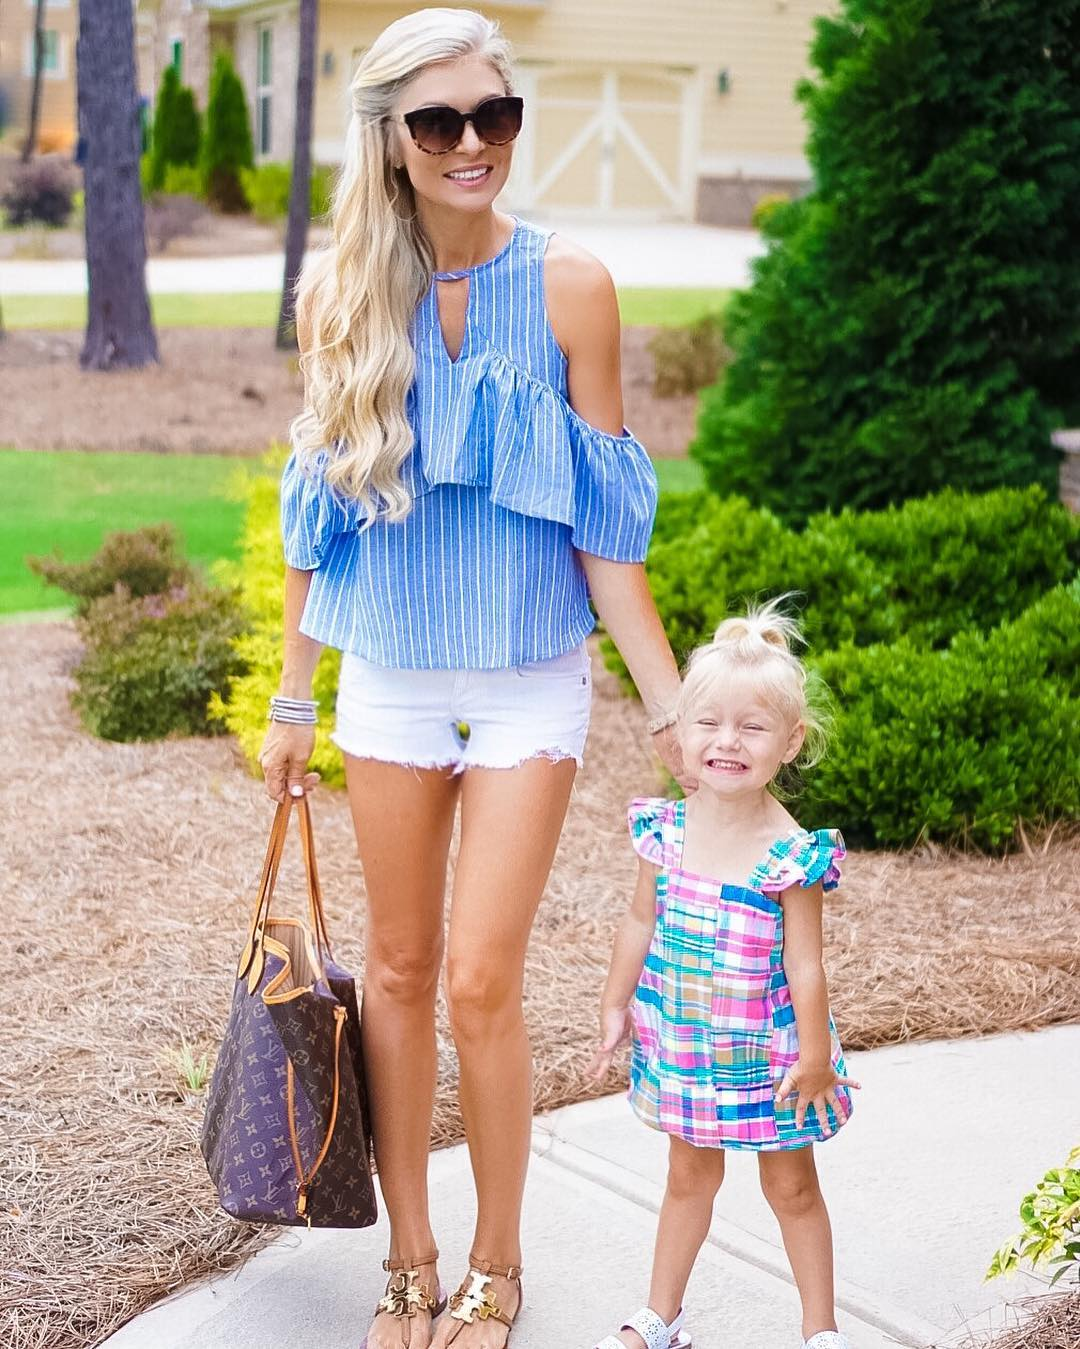 Summer nights with my sidekick! This is her #tgif face! http://liketk.it/2oMQ7 #happyfriday #lifewithblove #summer #momlife